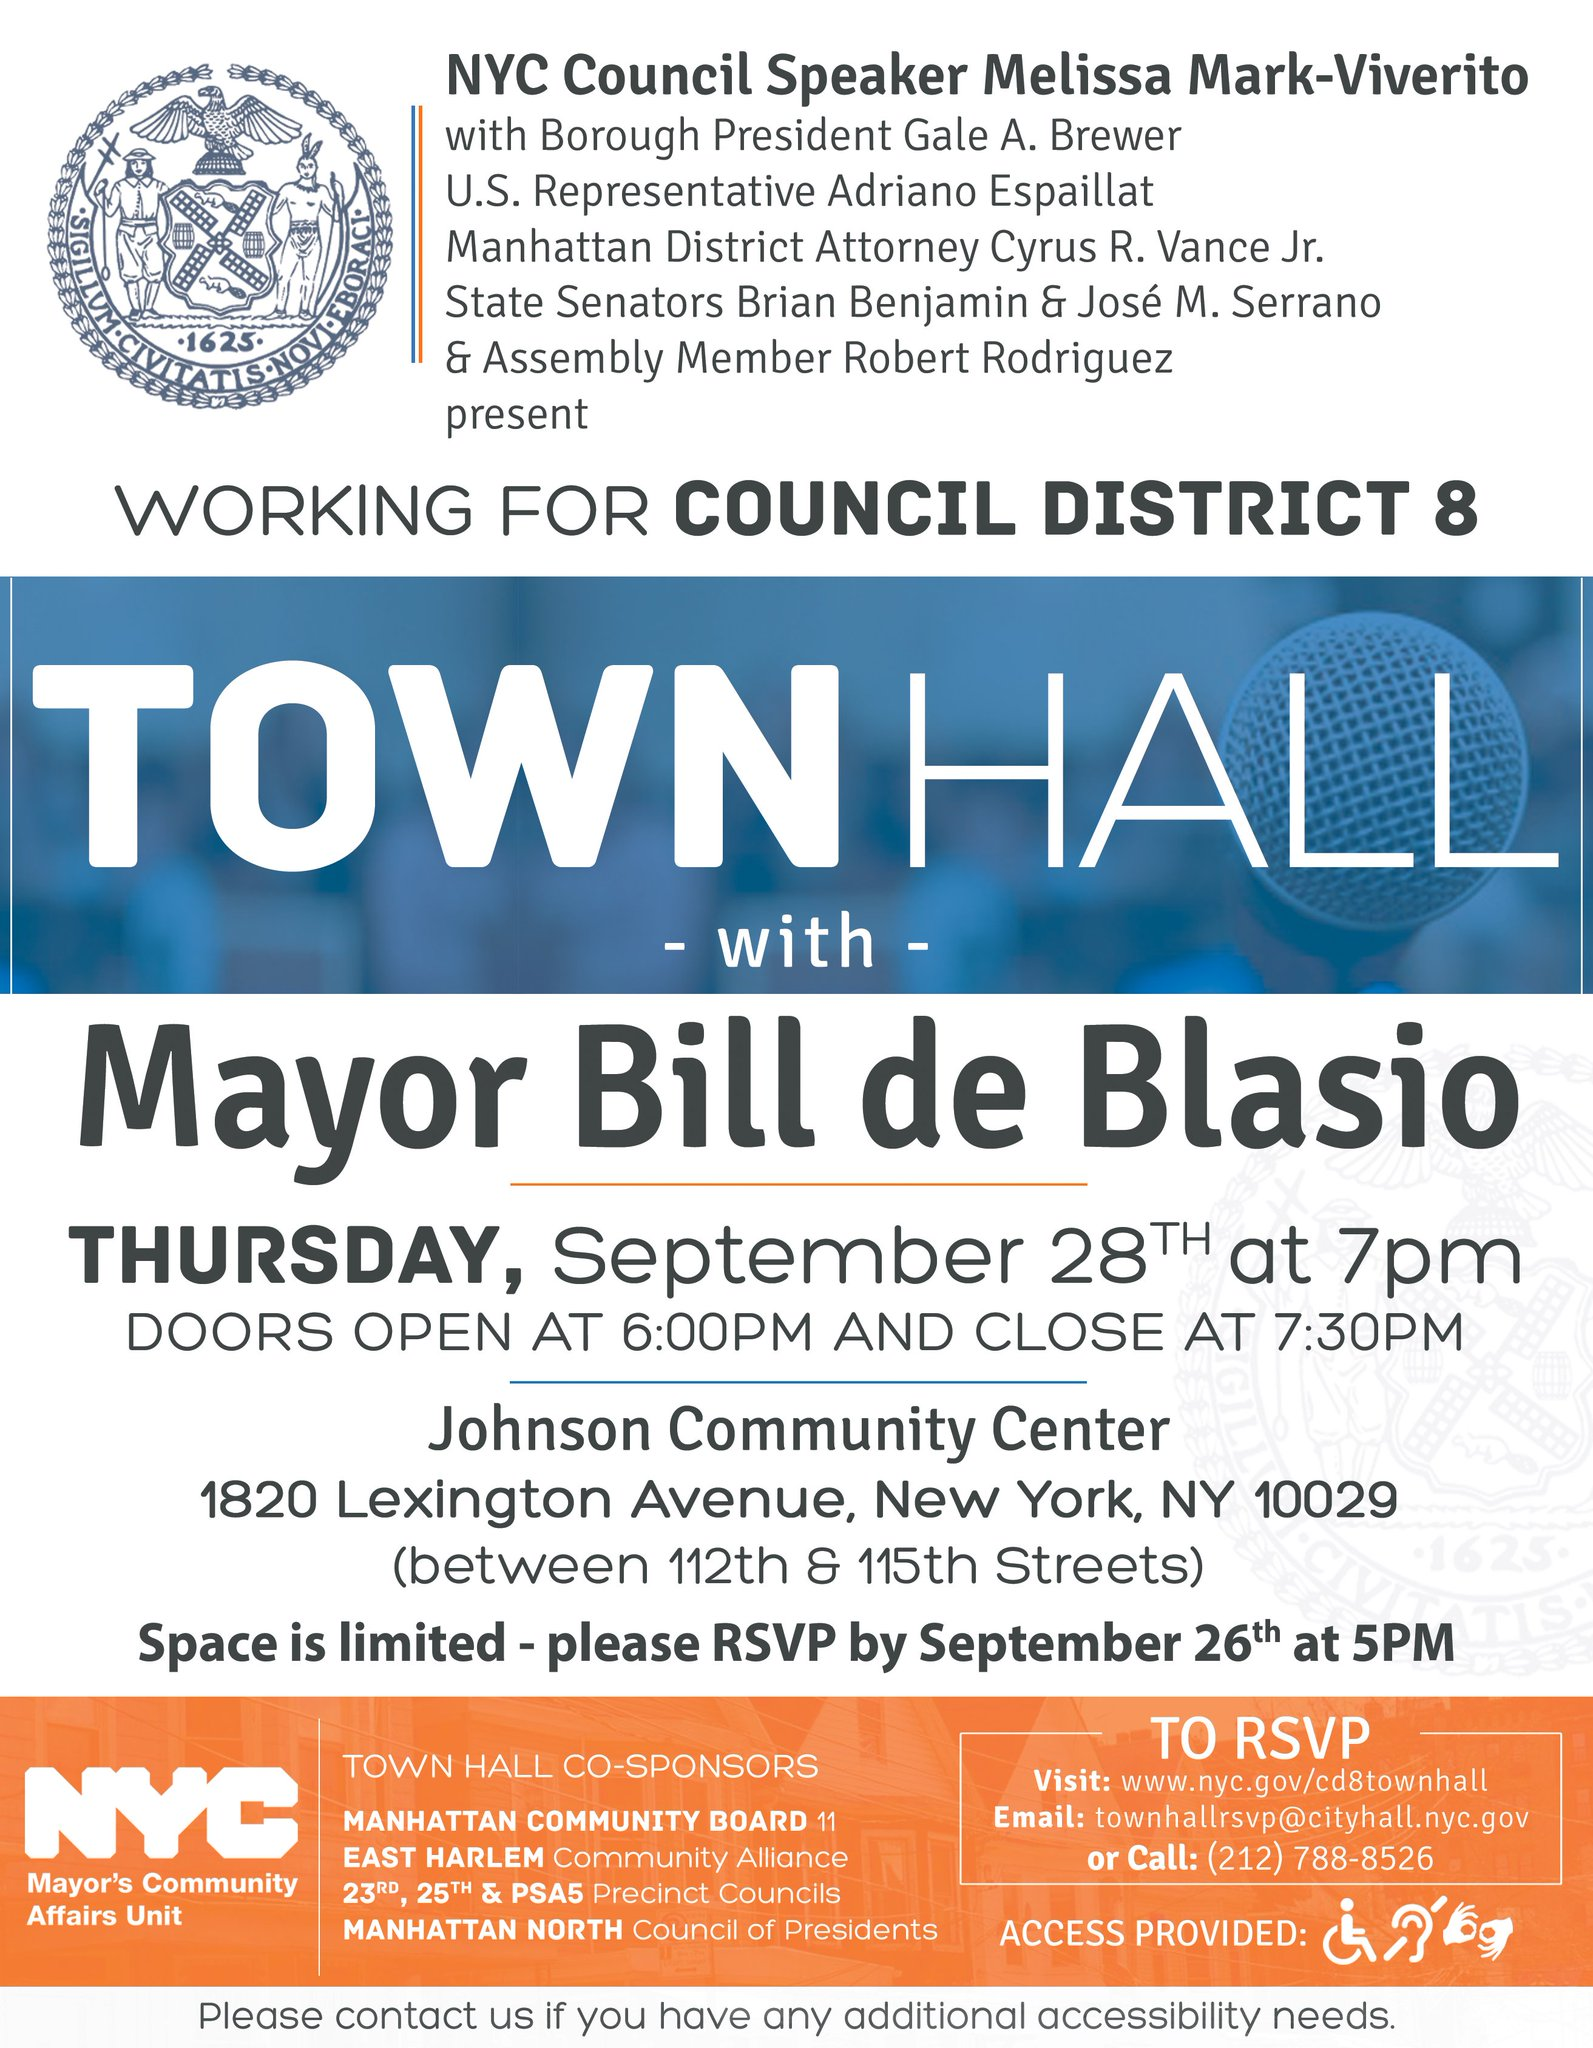 Town Hall with @NYCMayor in #EastHarlem #ElBarrio http://bit.ly/2x8YAMr Email townhallrsvp@cityhall.nyc.gov or Call (212) 788-8526